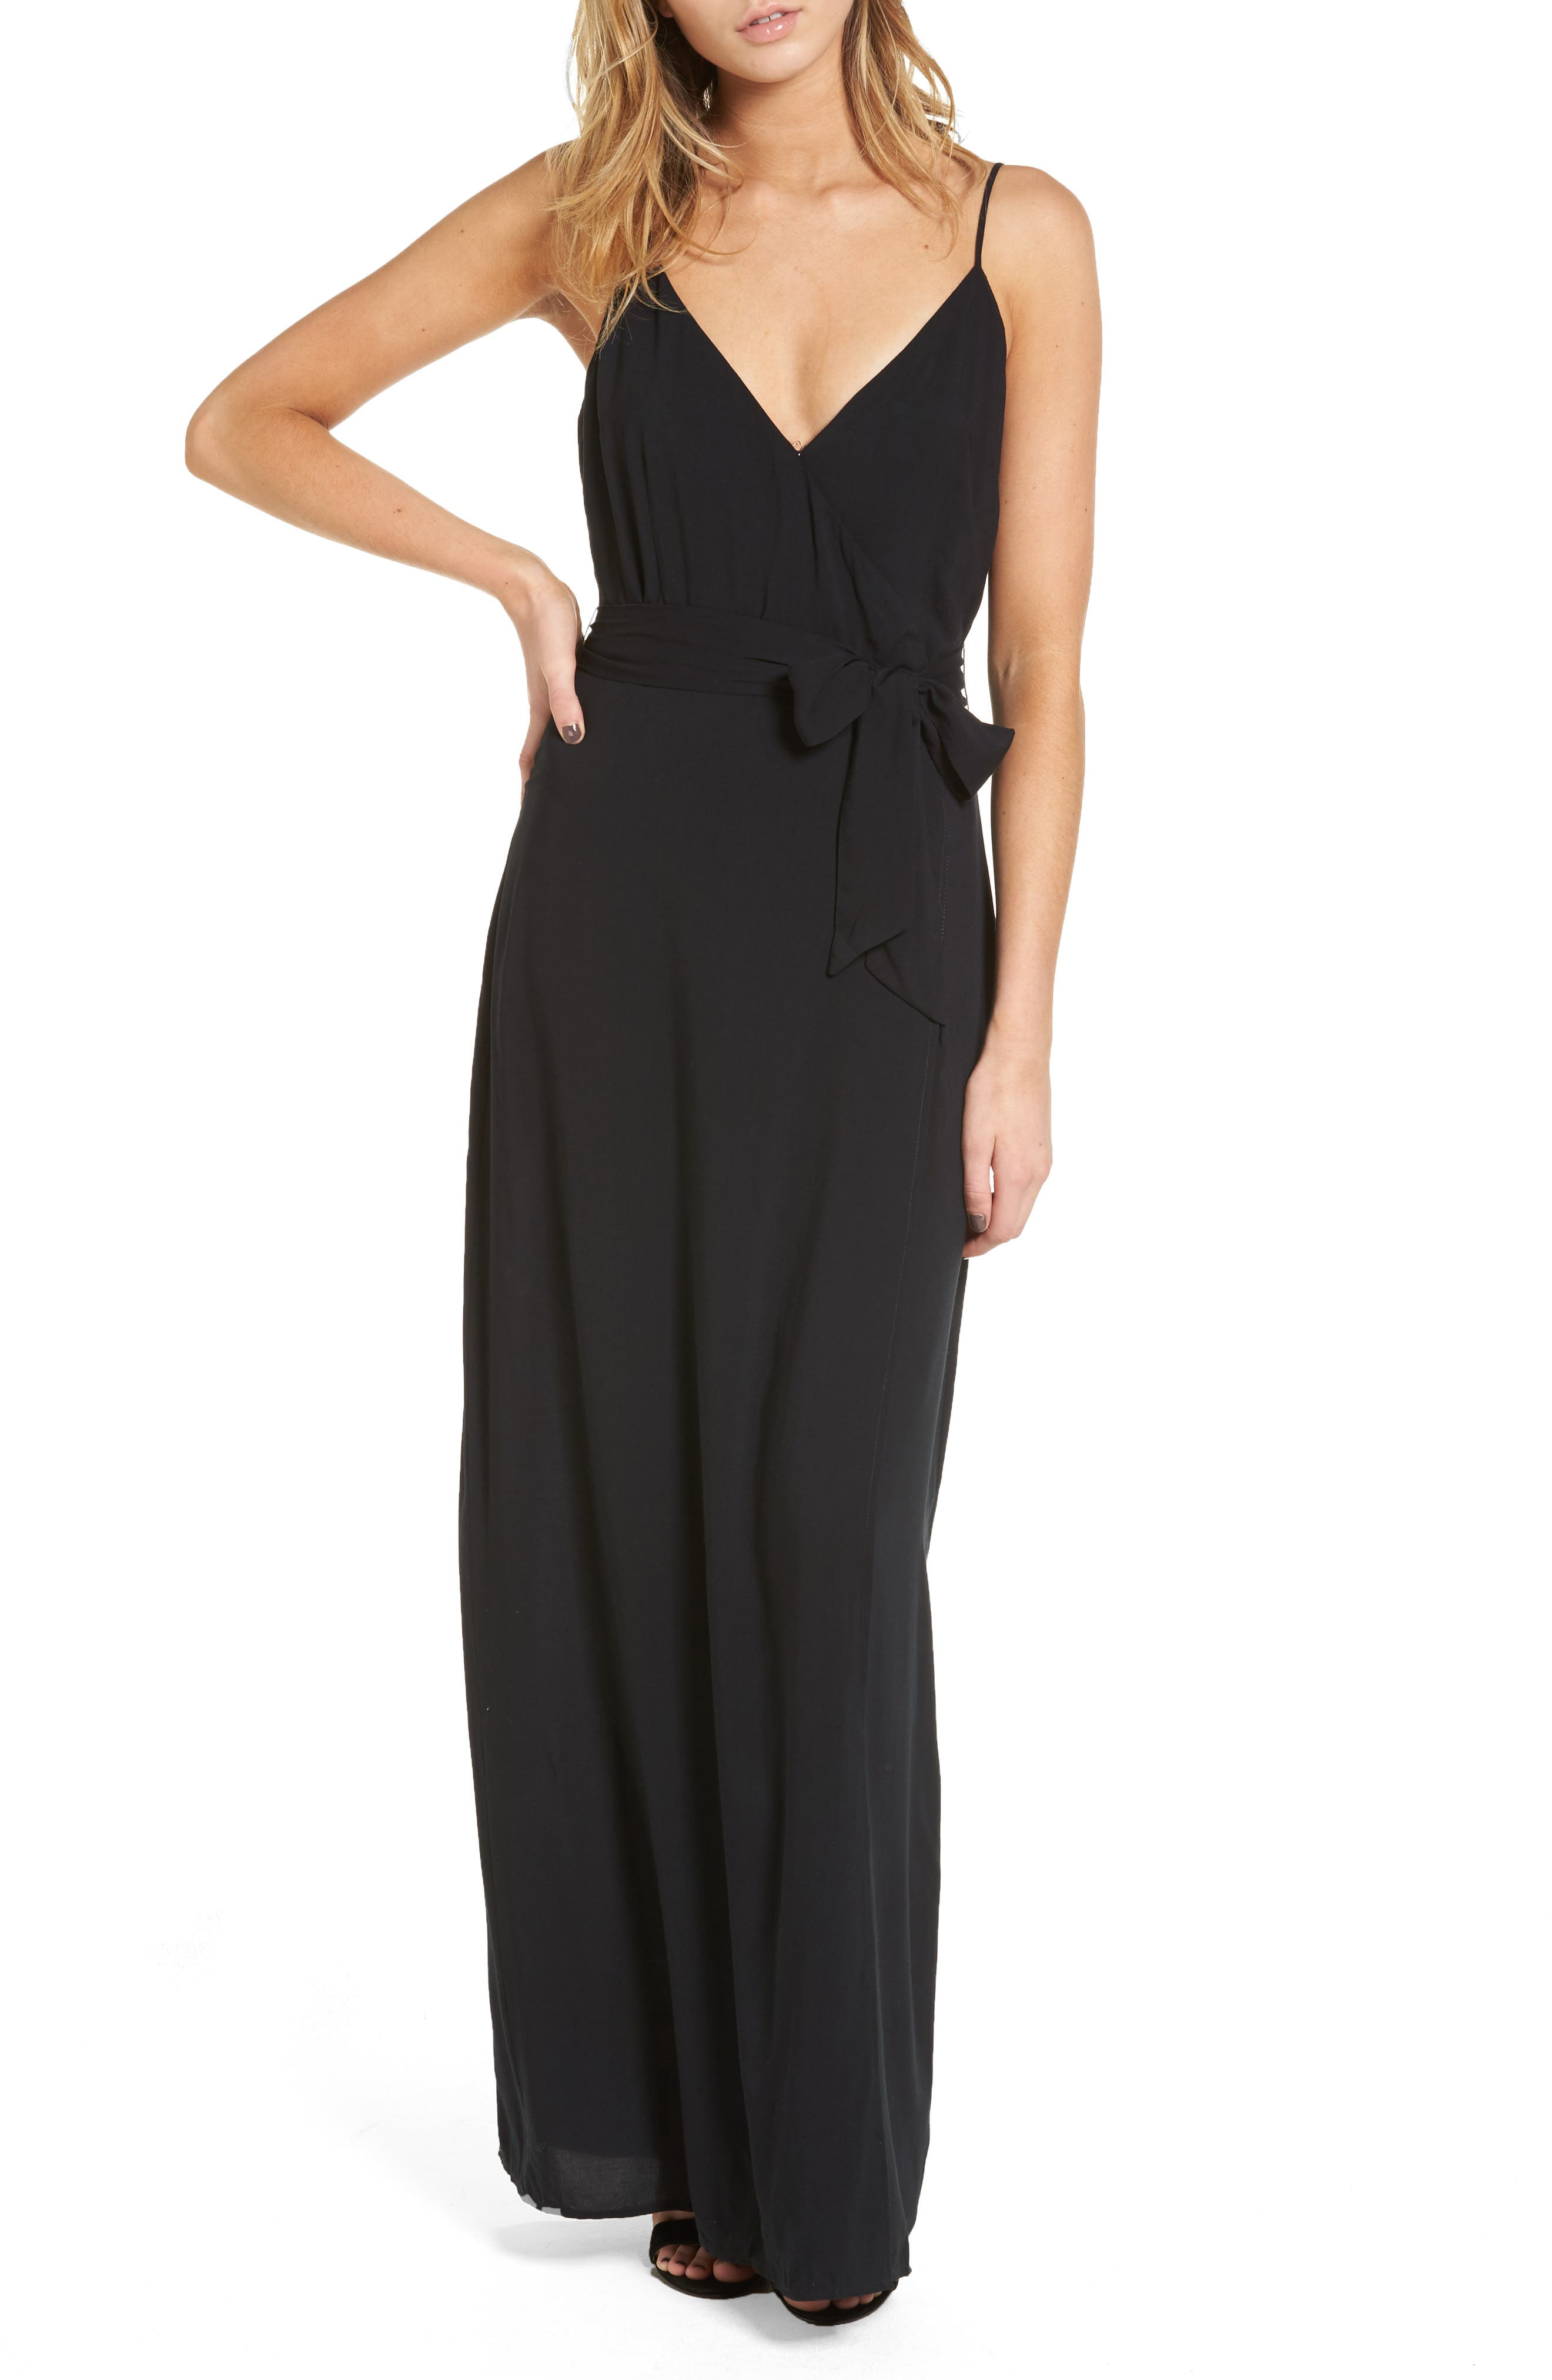 Regina Maxi Dress,                             Main thumbnail 1, color,                             Black